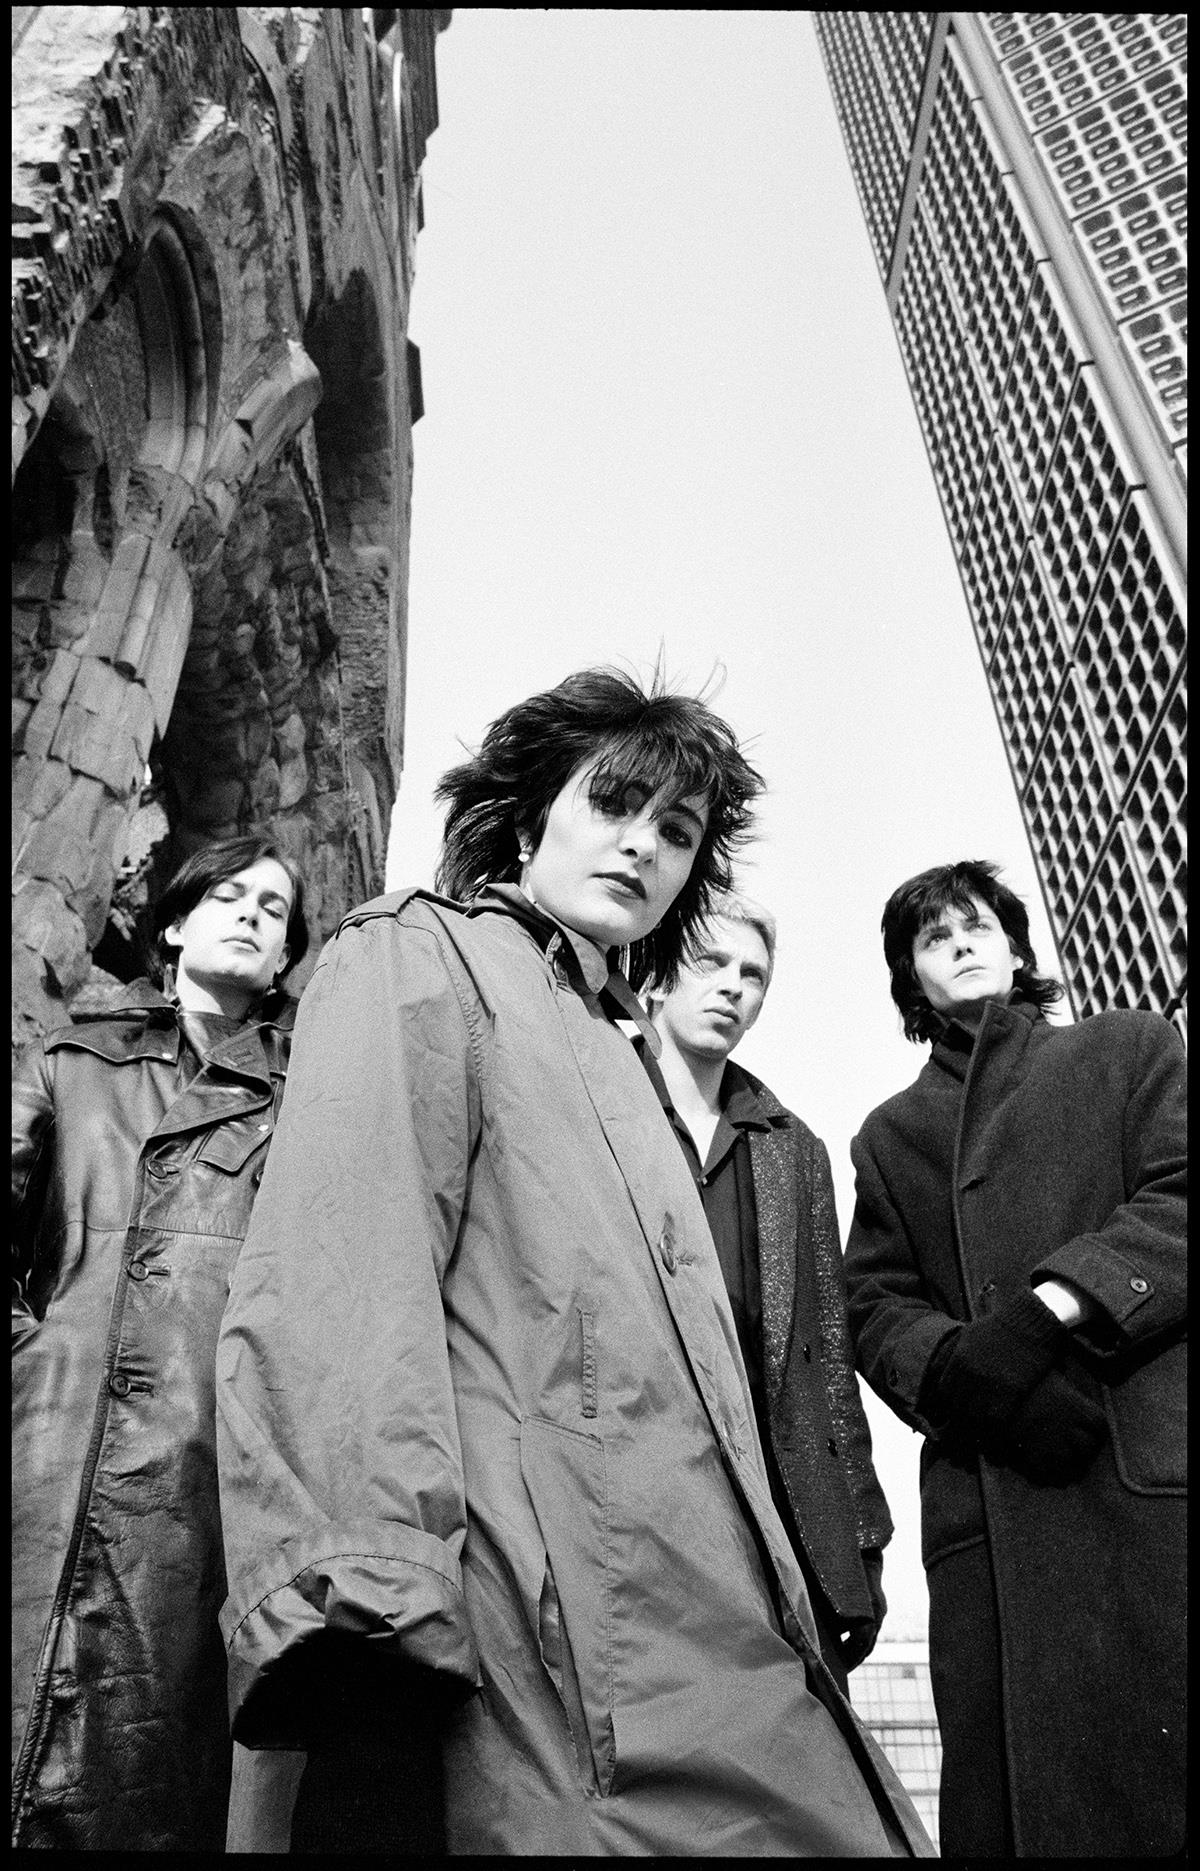 Siouxsie and the Banshees photographed by Jill Furmanovsky  in Berlin in 1979